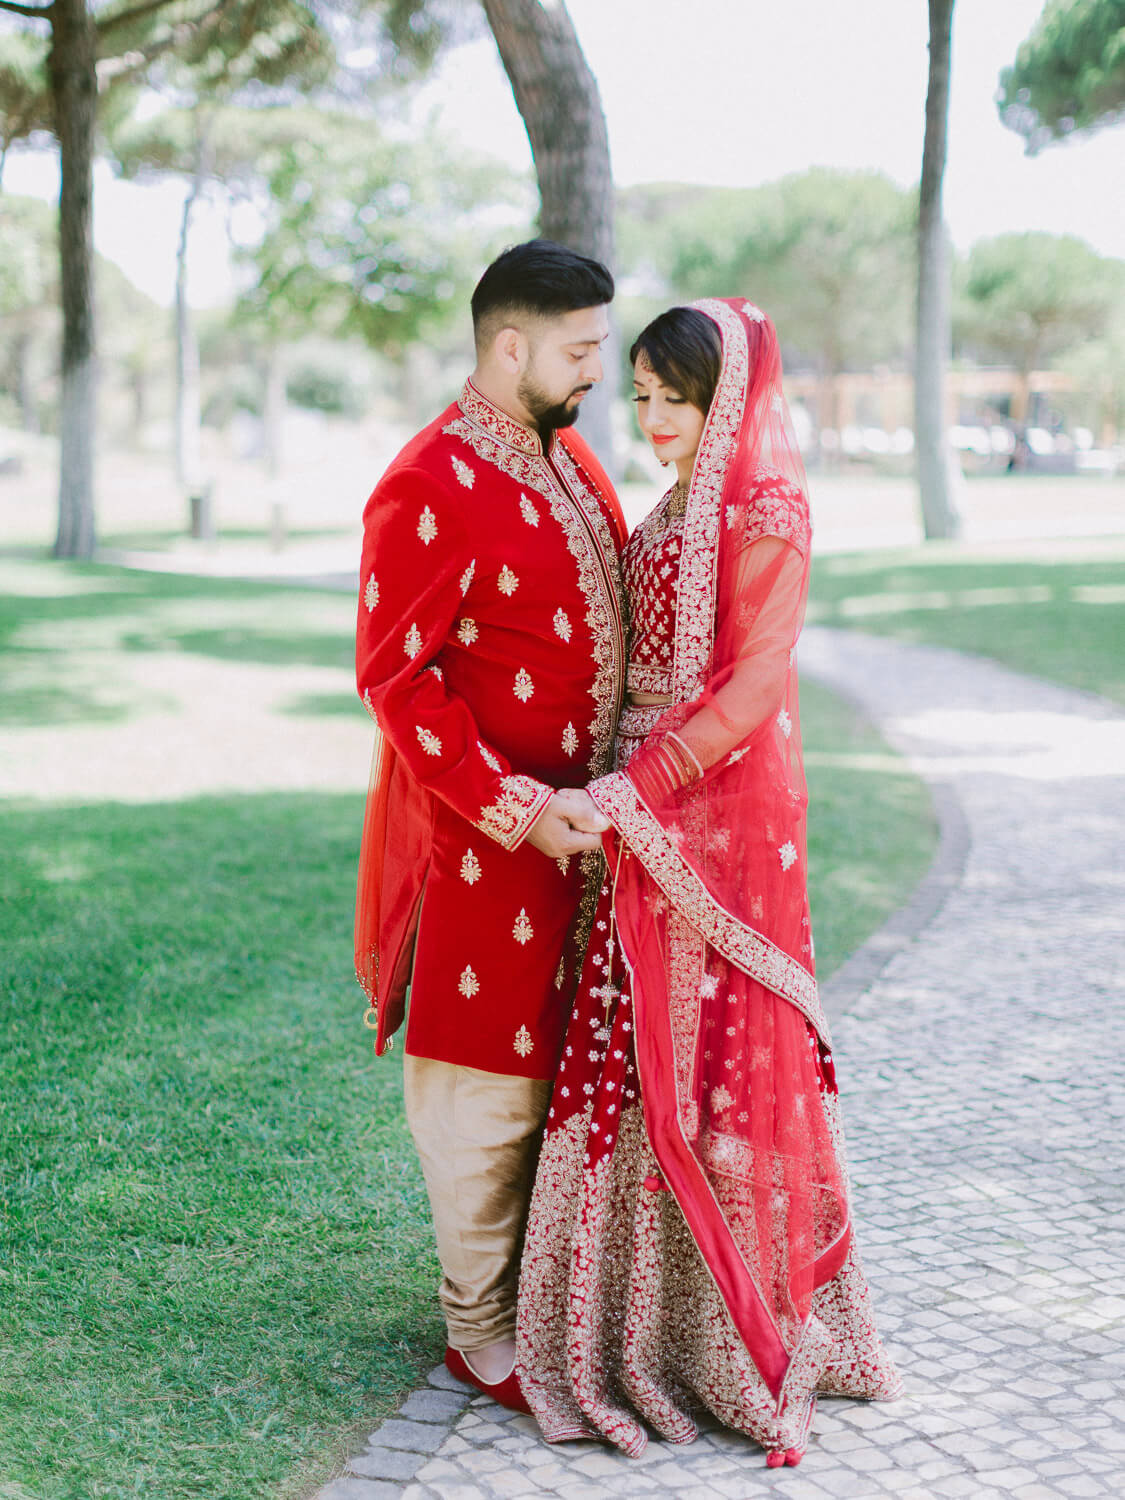 Romantic Hindu bride and groom portrait by Portugal Wedding Photographer